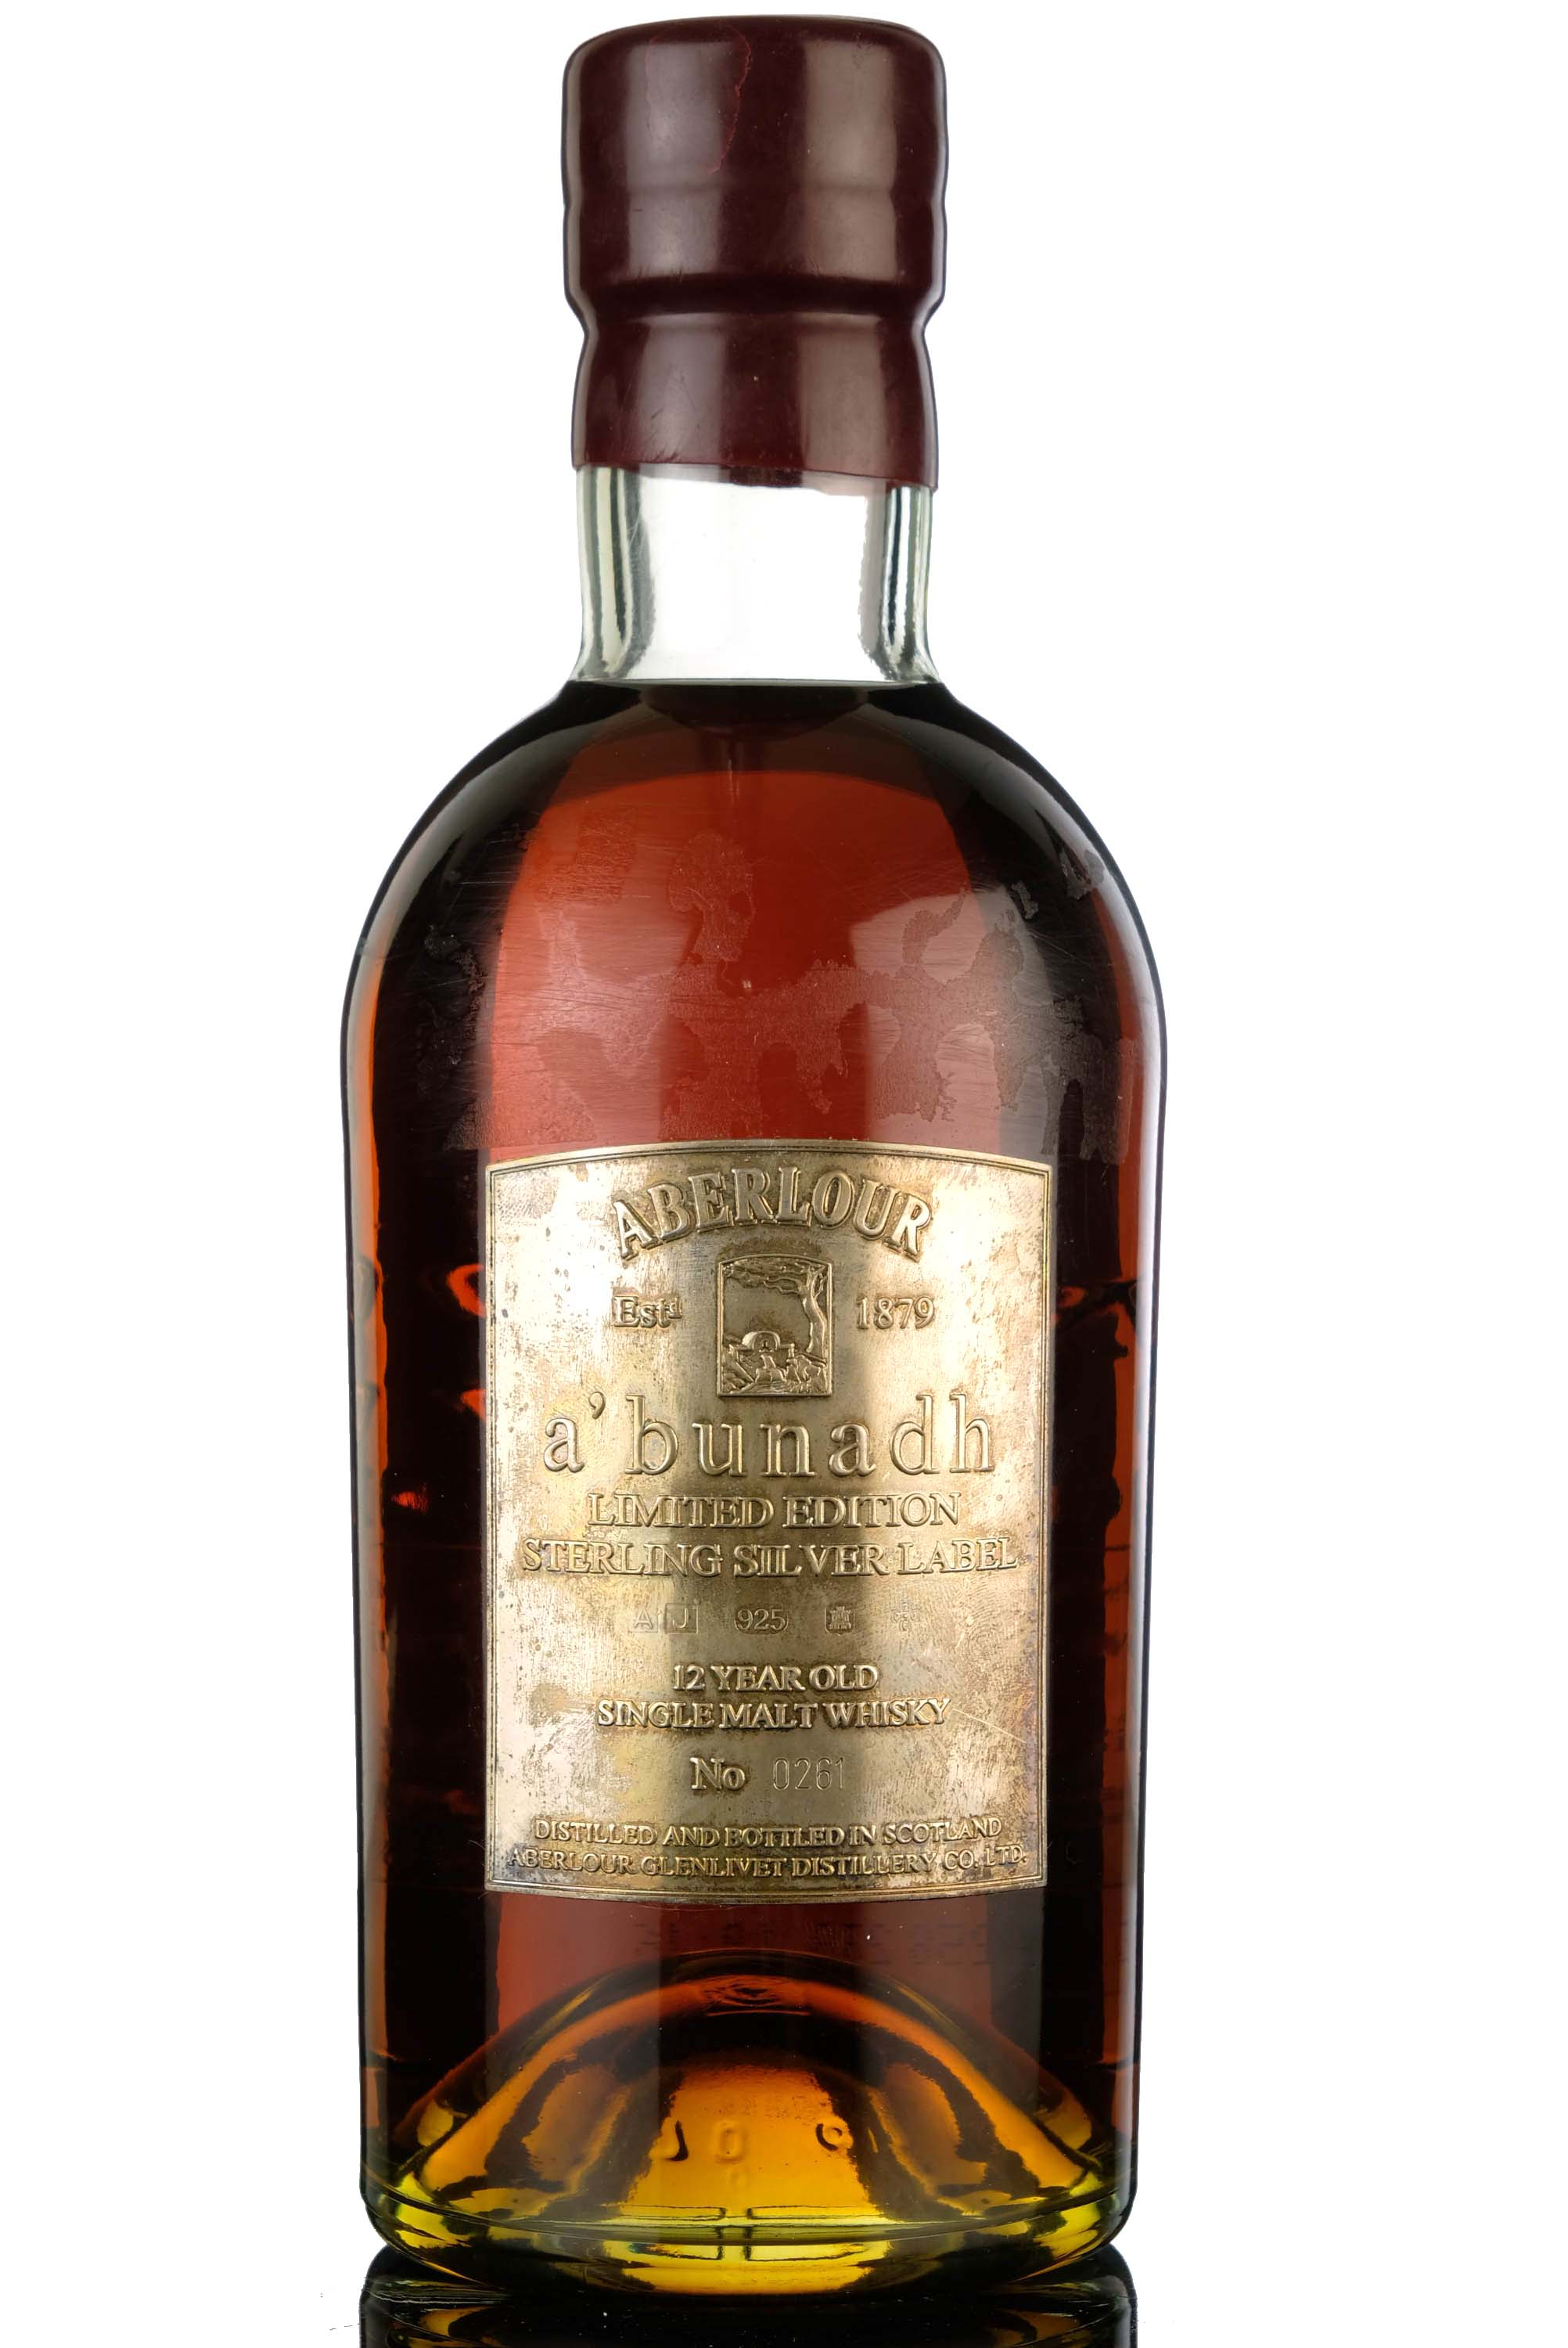 aberlour abunadh - 12 year old - sterling silver label